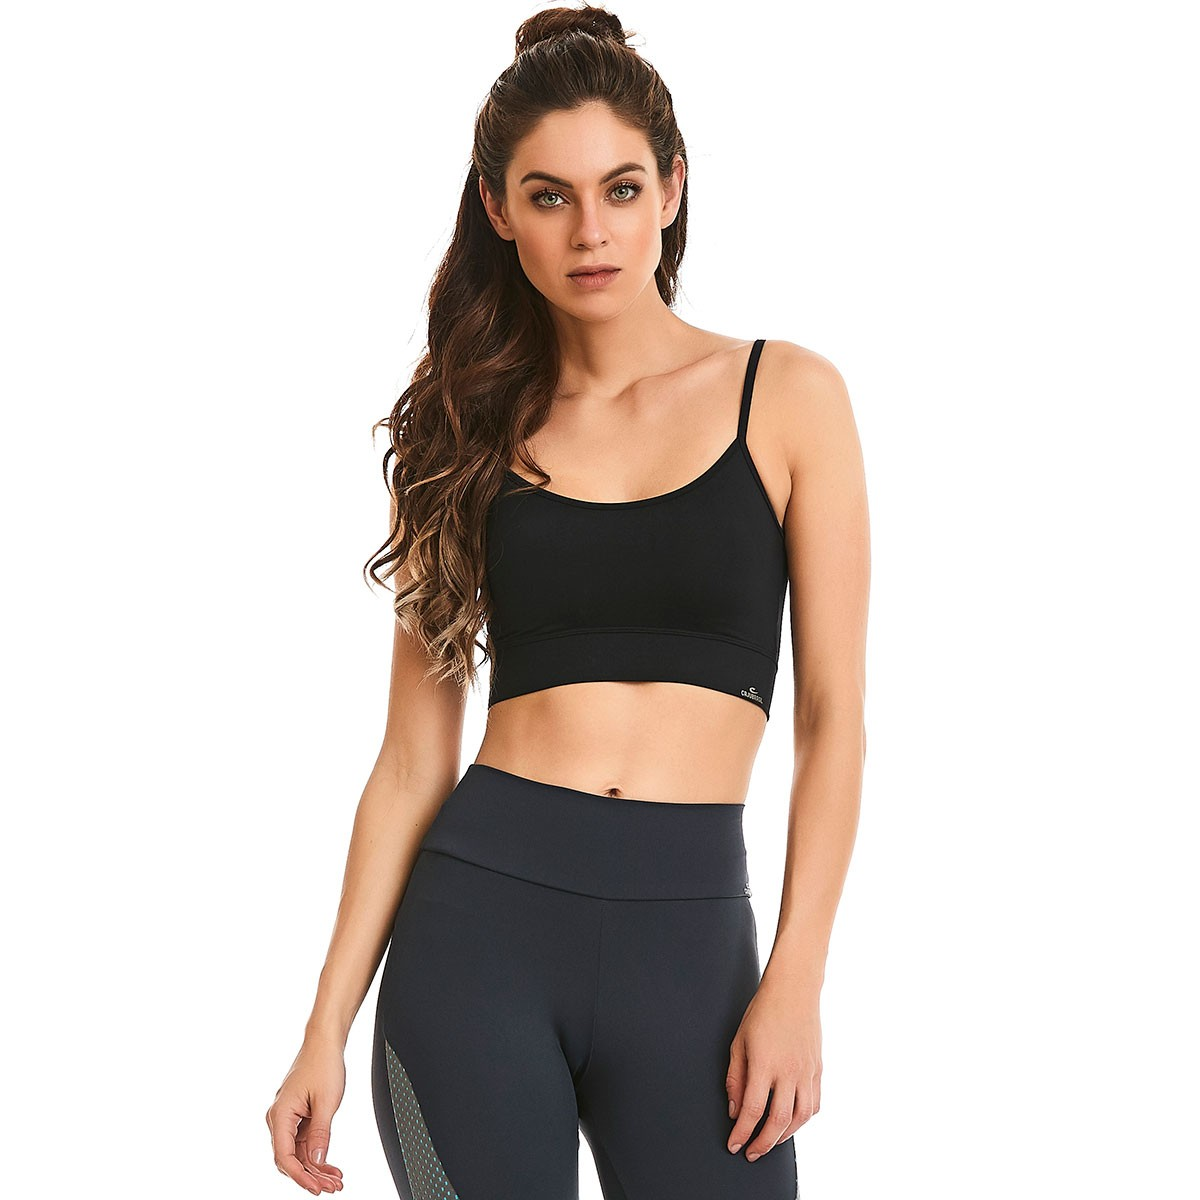 Top Lift Basic Preto CAJUBRASIL Activewear